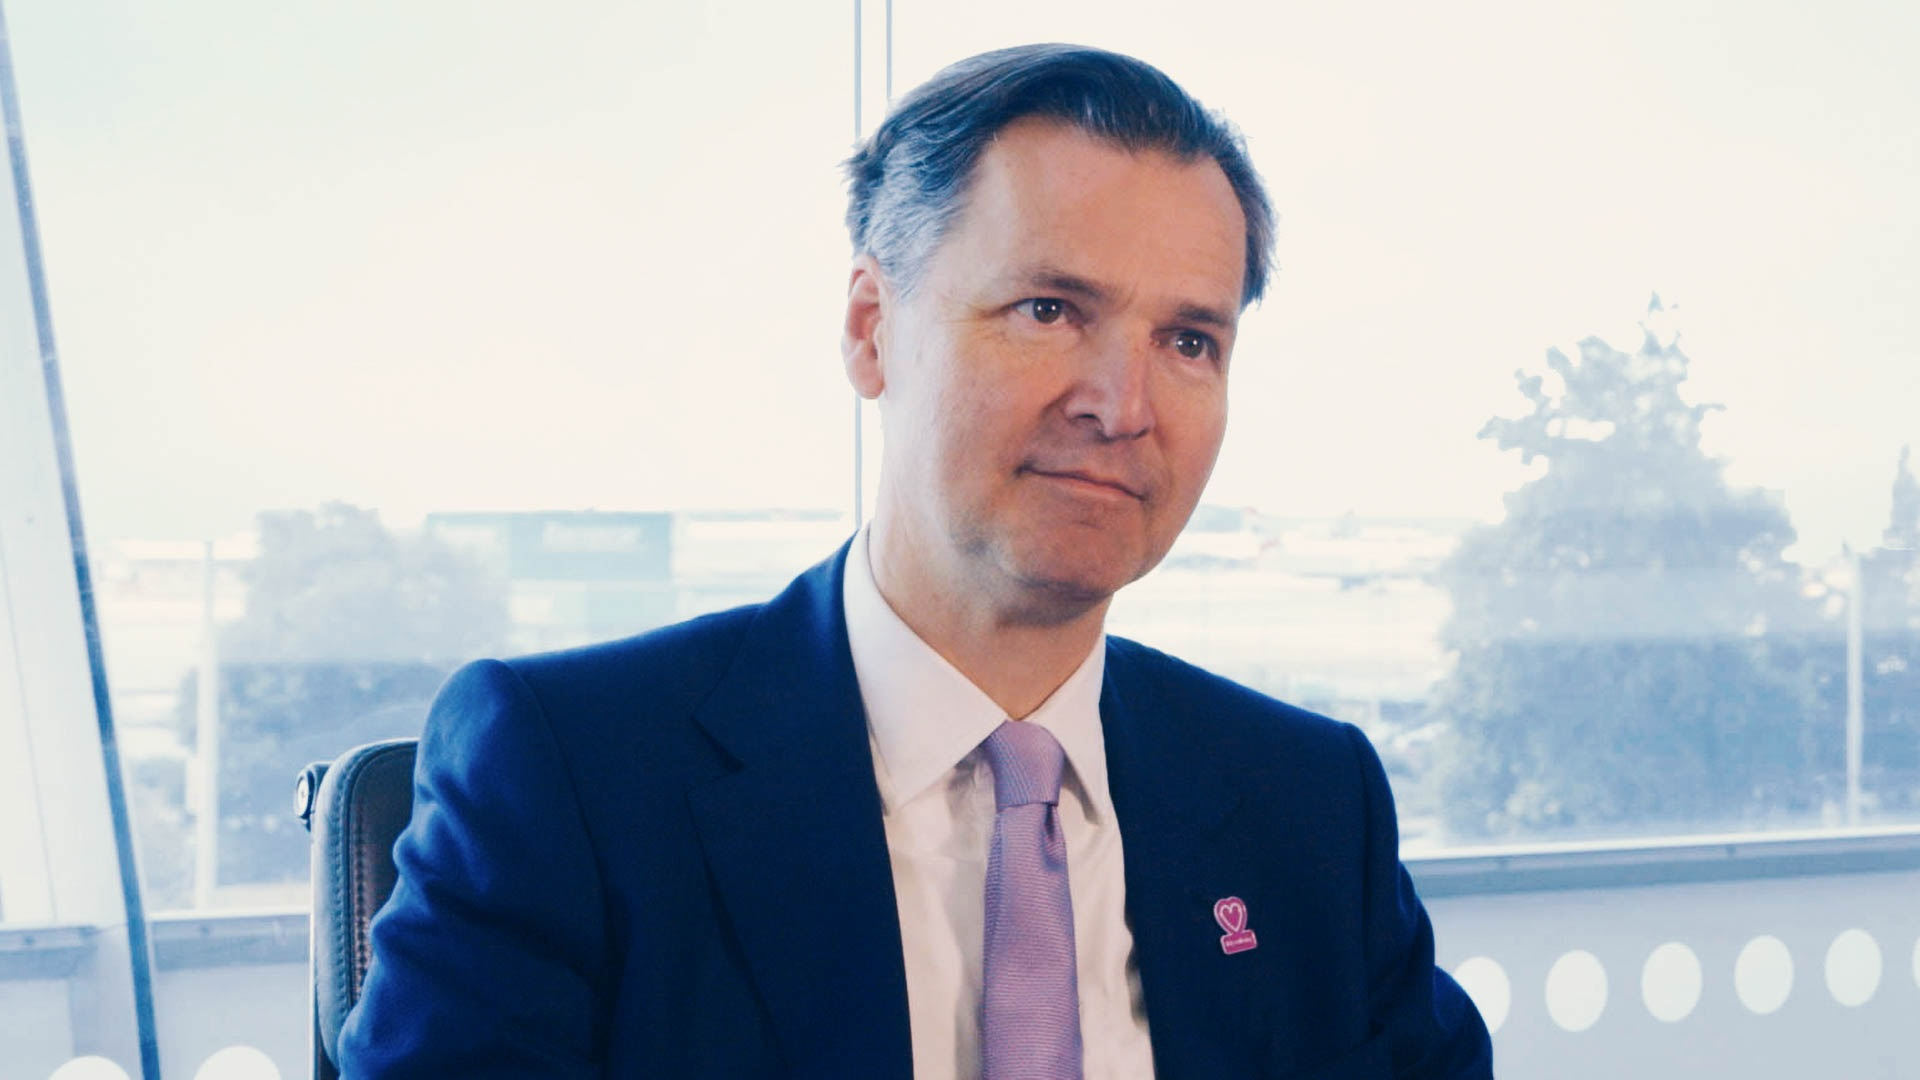 John Holland Kaye, Healthrow CEO interview with Mace